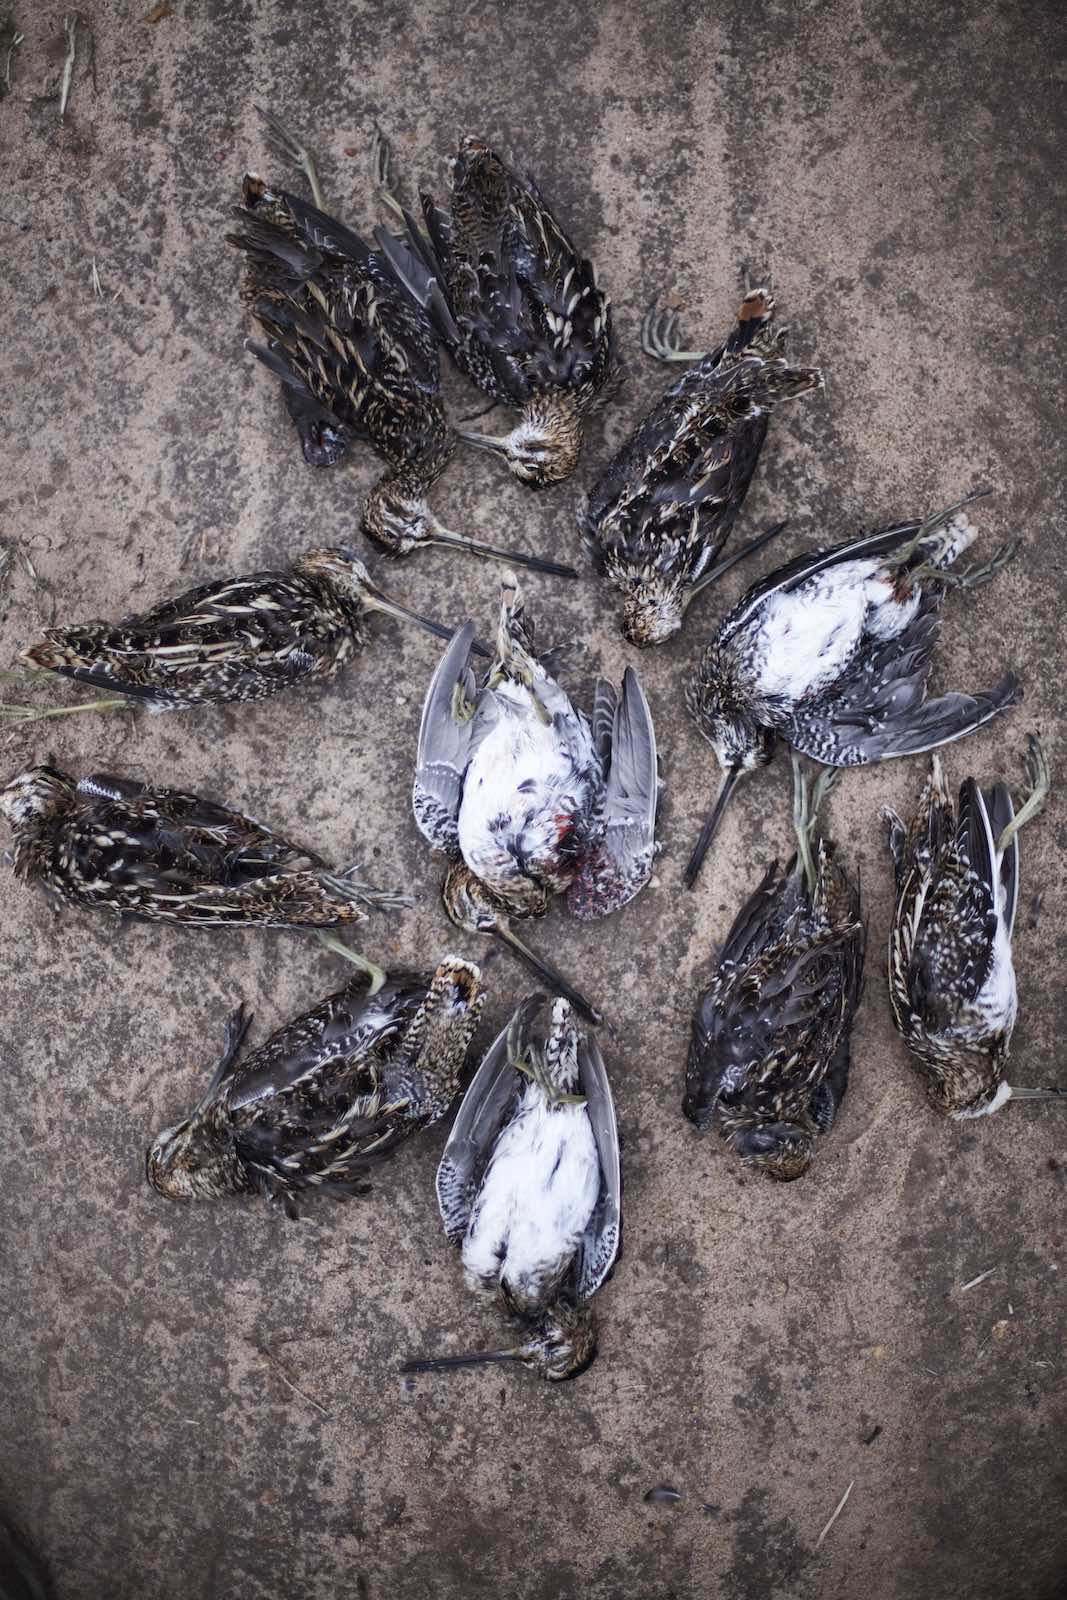 Jody Horton Photography - Dead Snipes collected together on the ground.